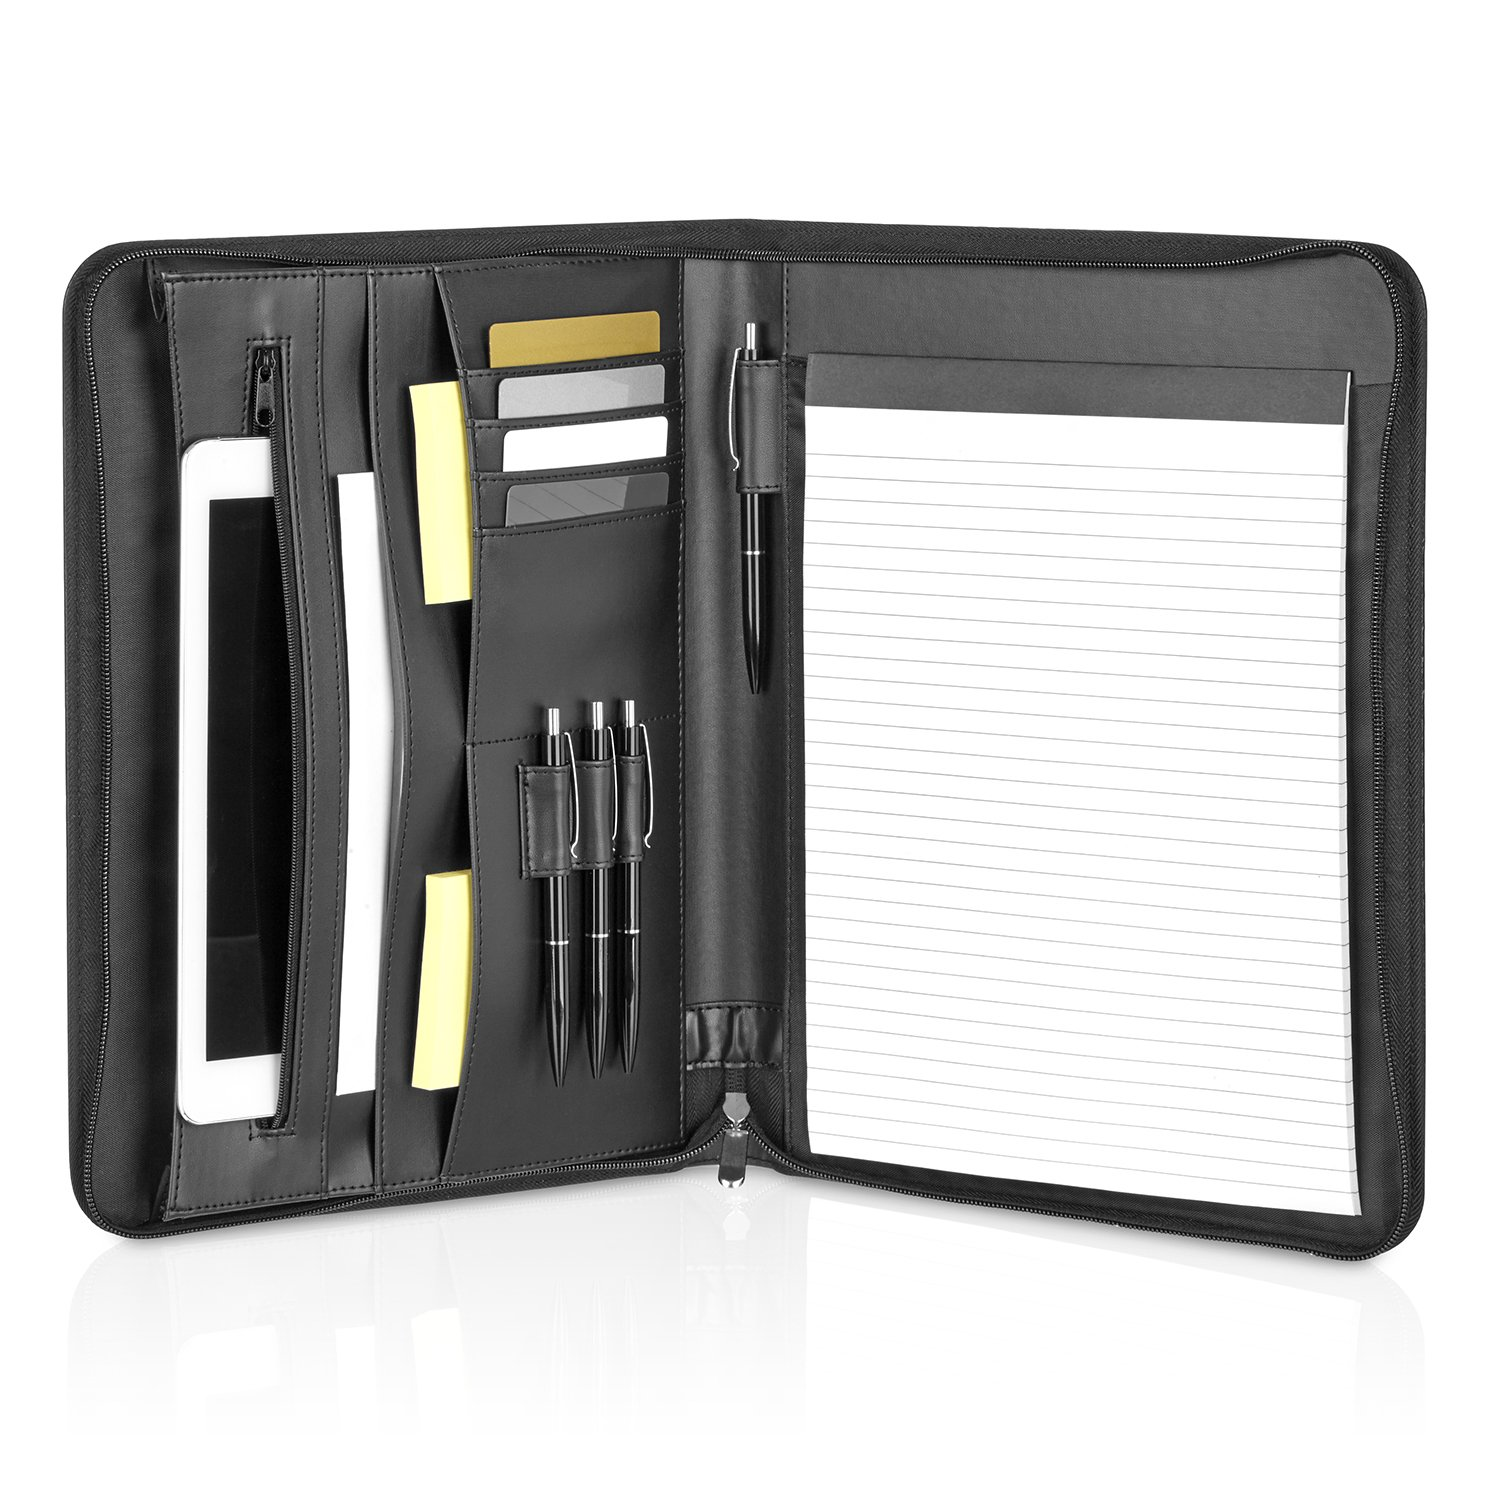 GOODMAN Wallstreet astuccio in pelle A4 con cerniera e scomparti iPad, Macbook Air - elegante scatola nera per documenti e conferenze - Business Organizer in similpelle